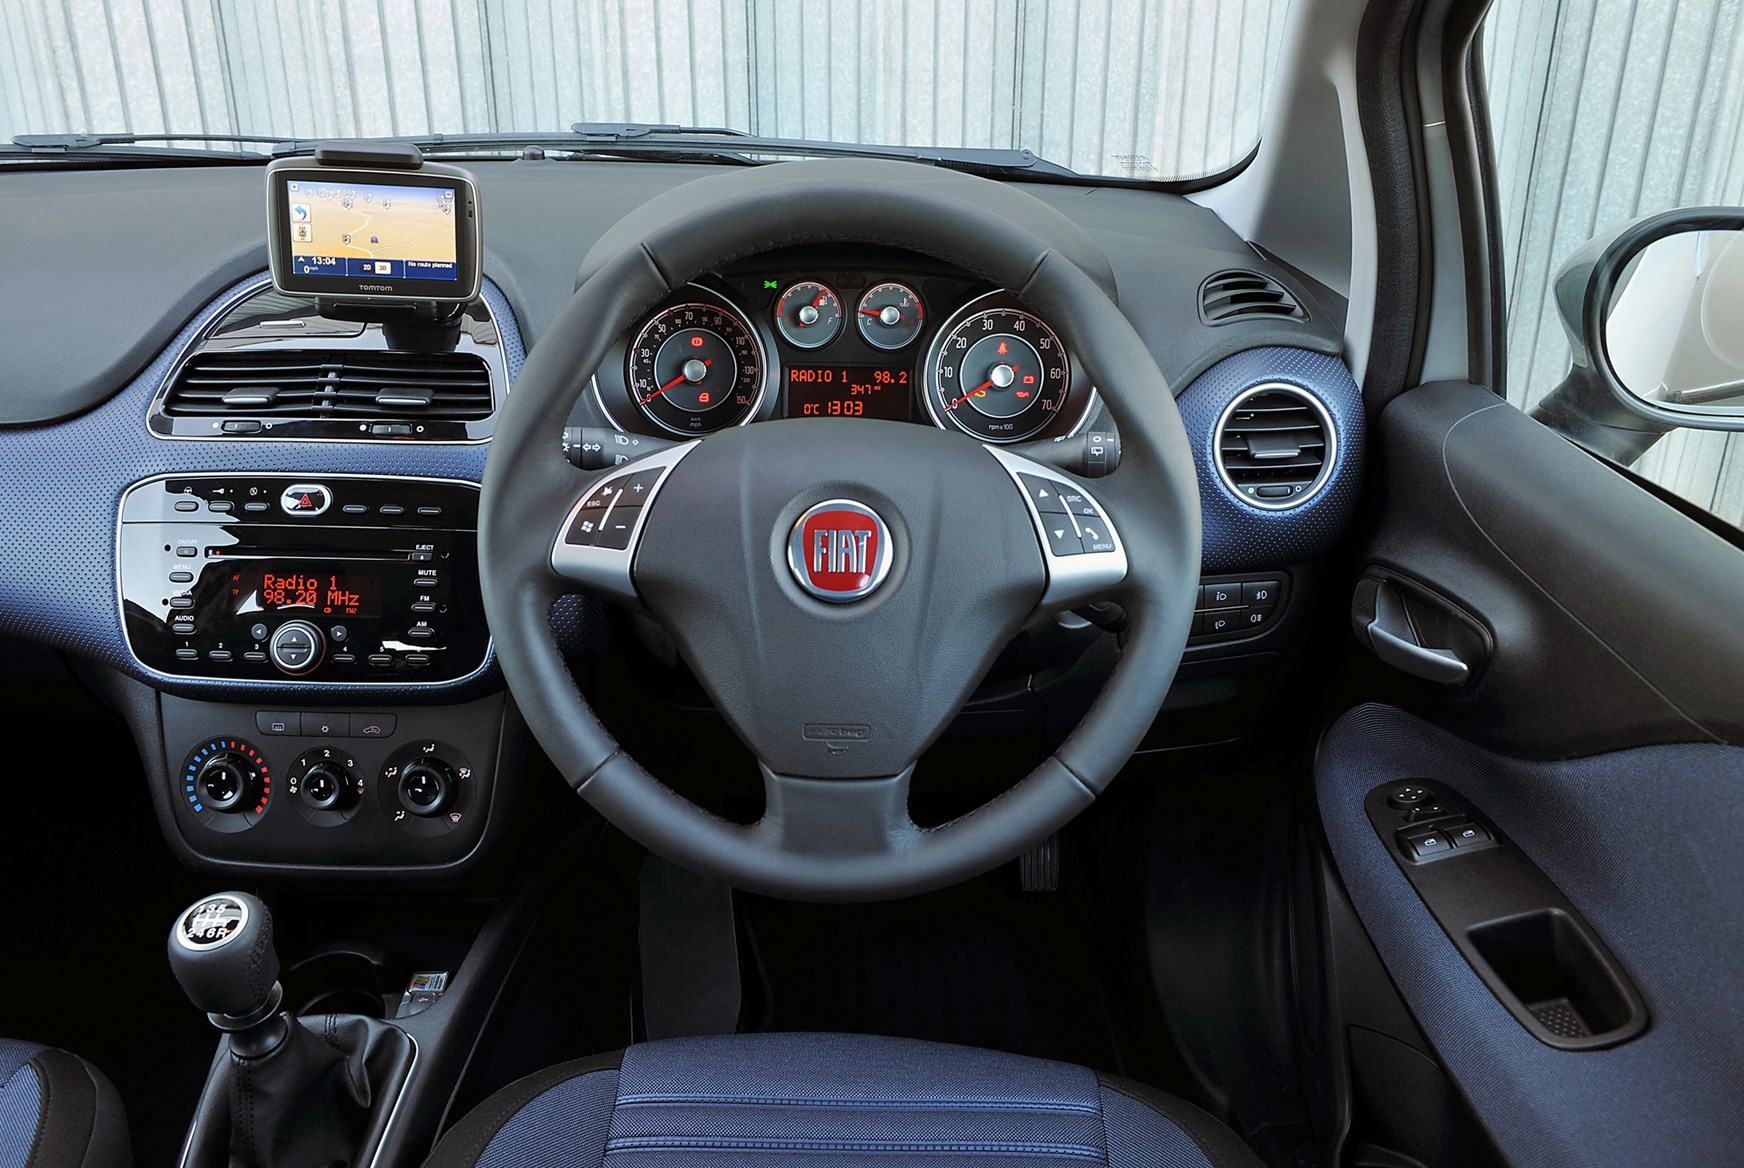 Fiat punto evo hatchback review 2010 2012 parkers for Del interior punto com